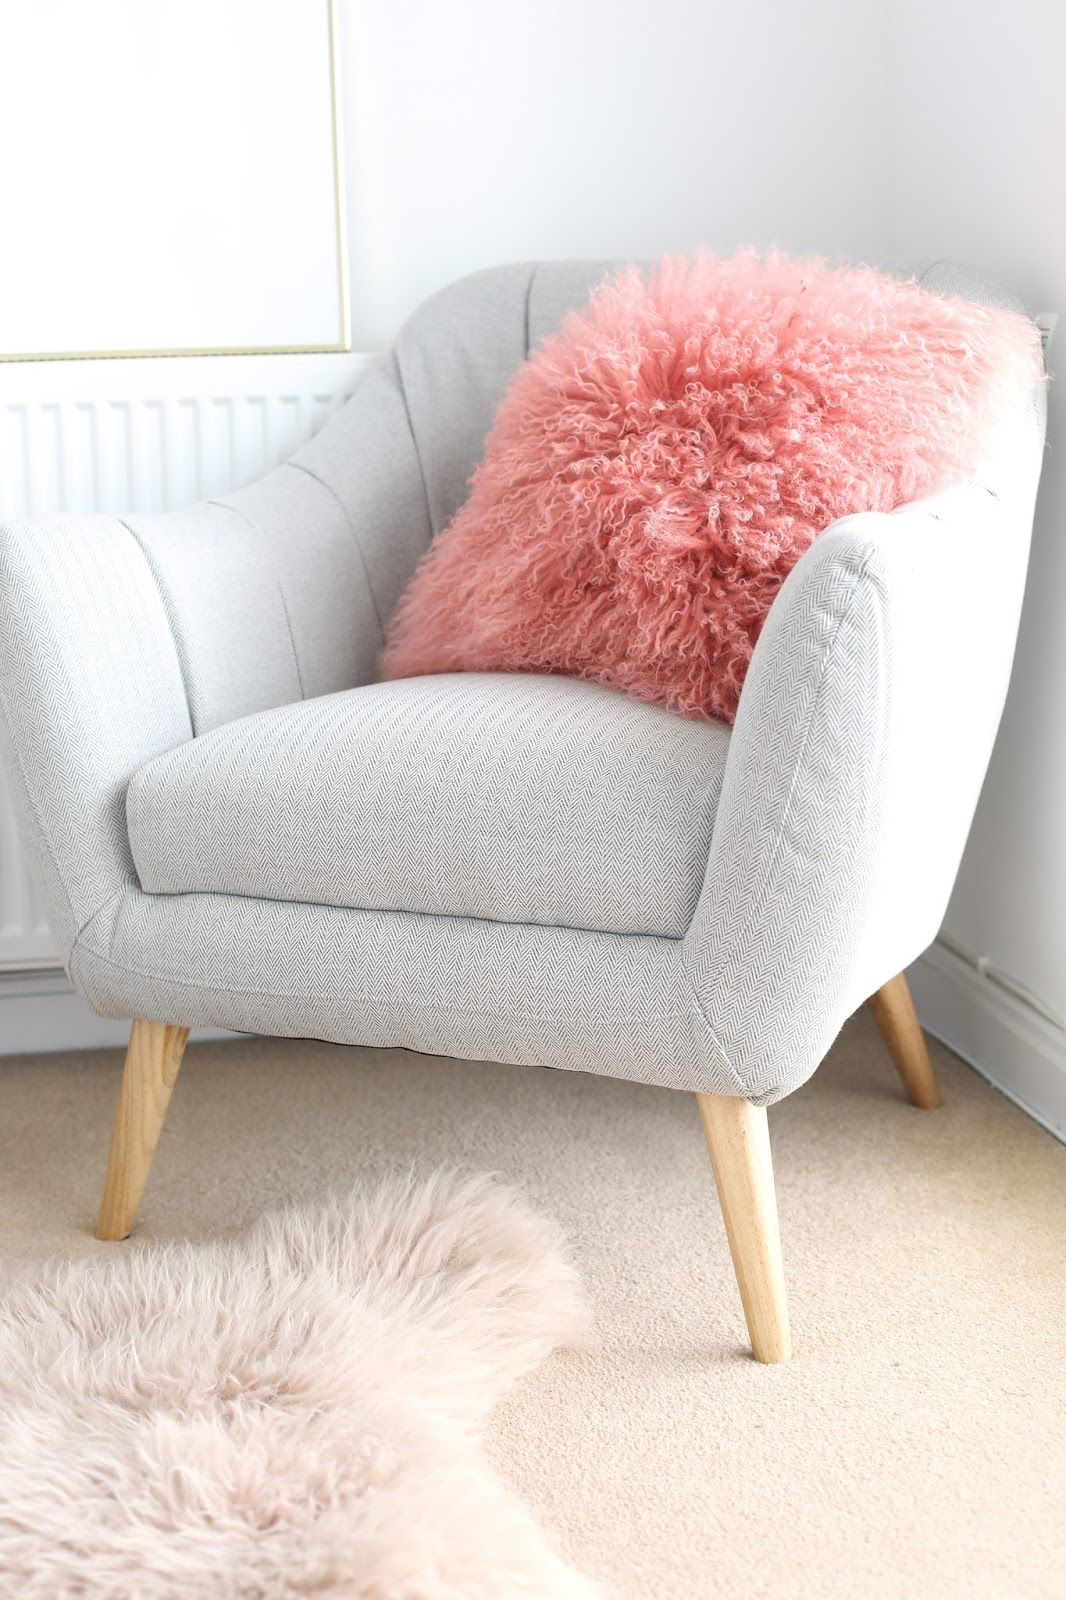 Pink Fluffy Chair Hellooctoberathome Bedroom Accent Chair And Fluffy Pillow